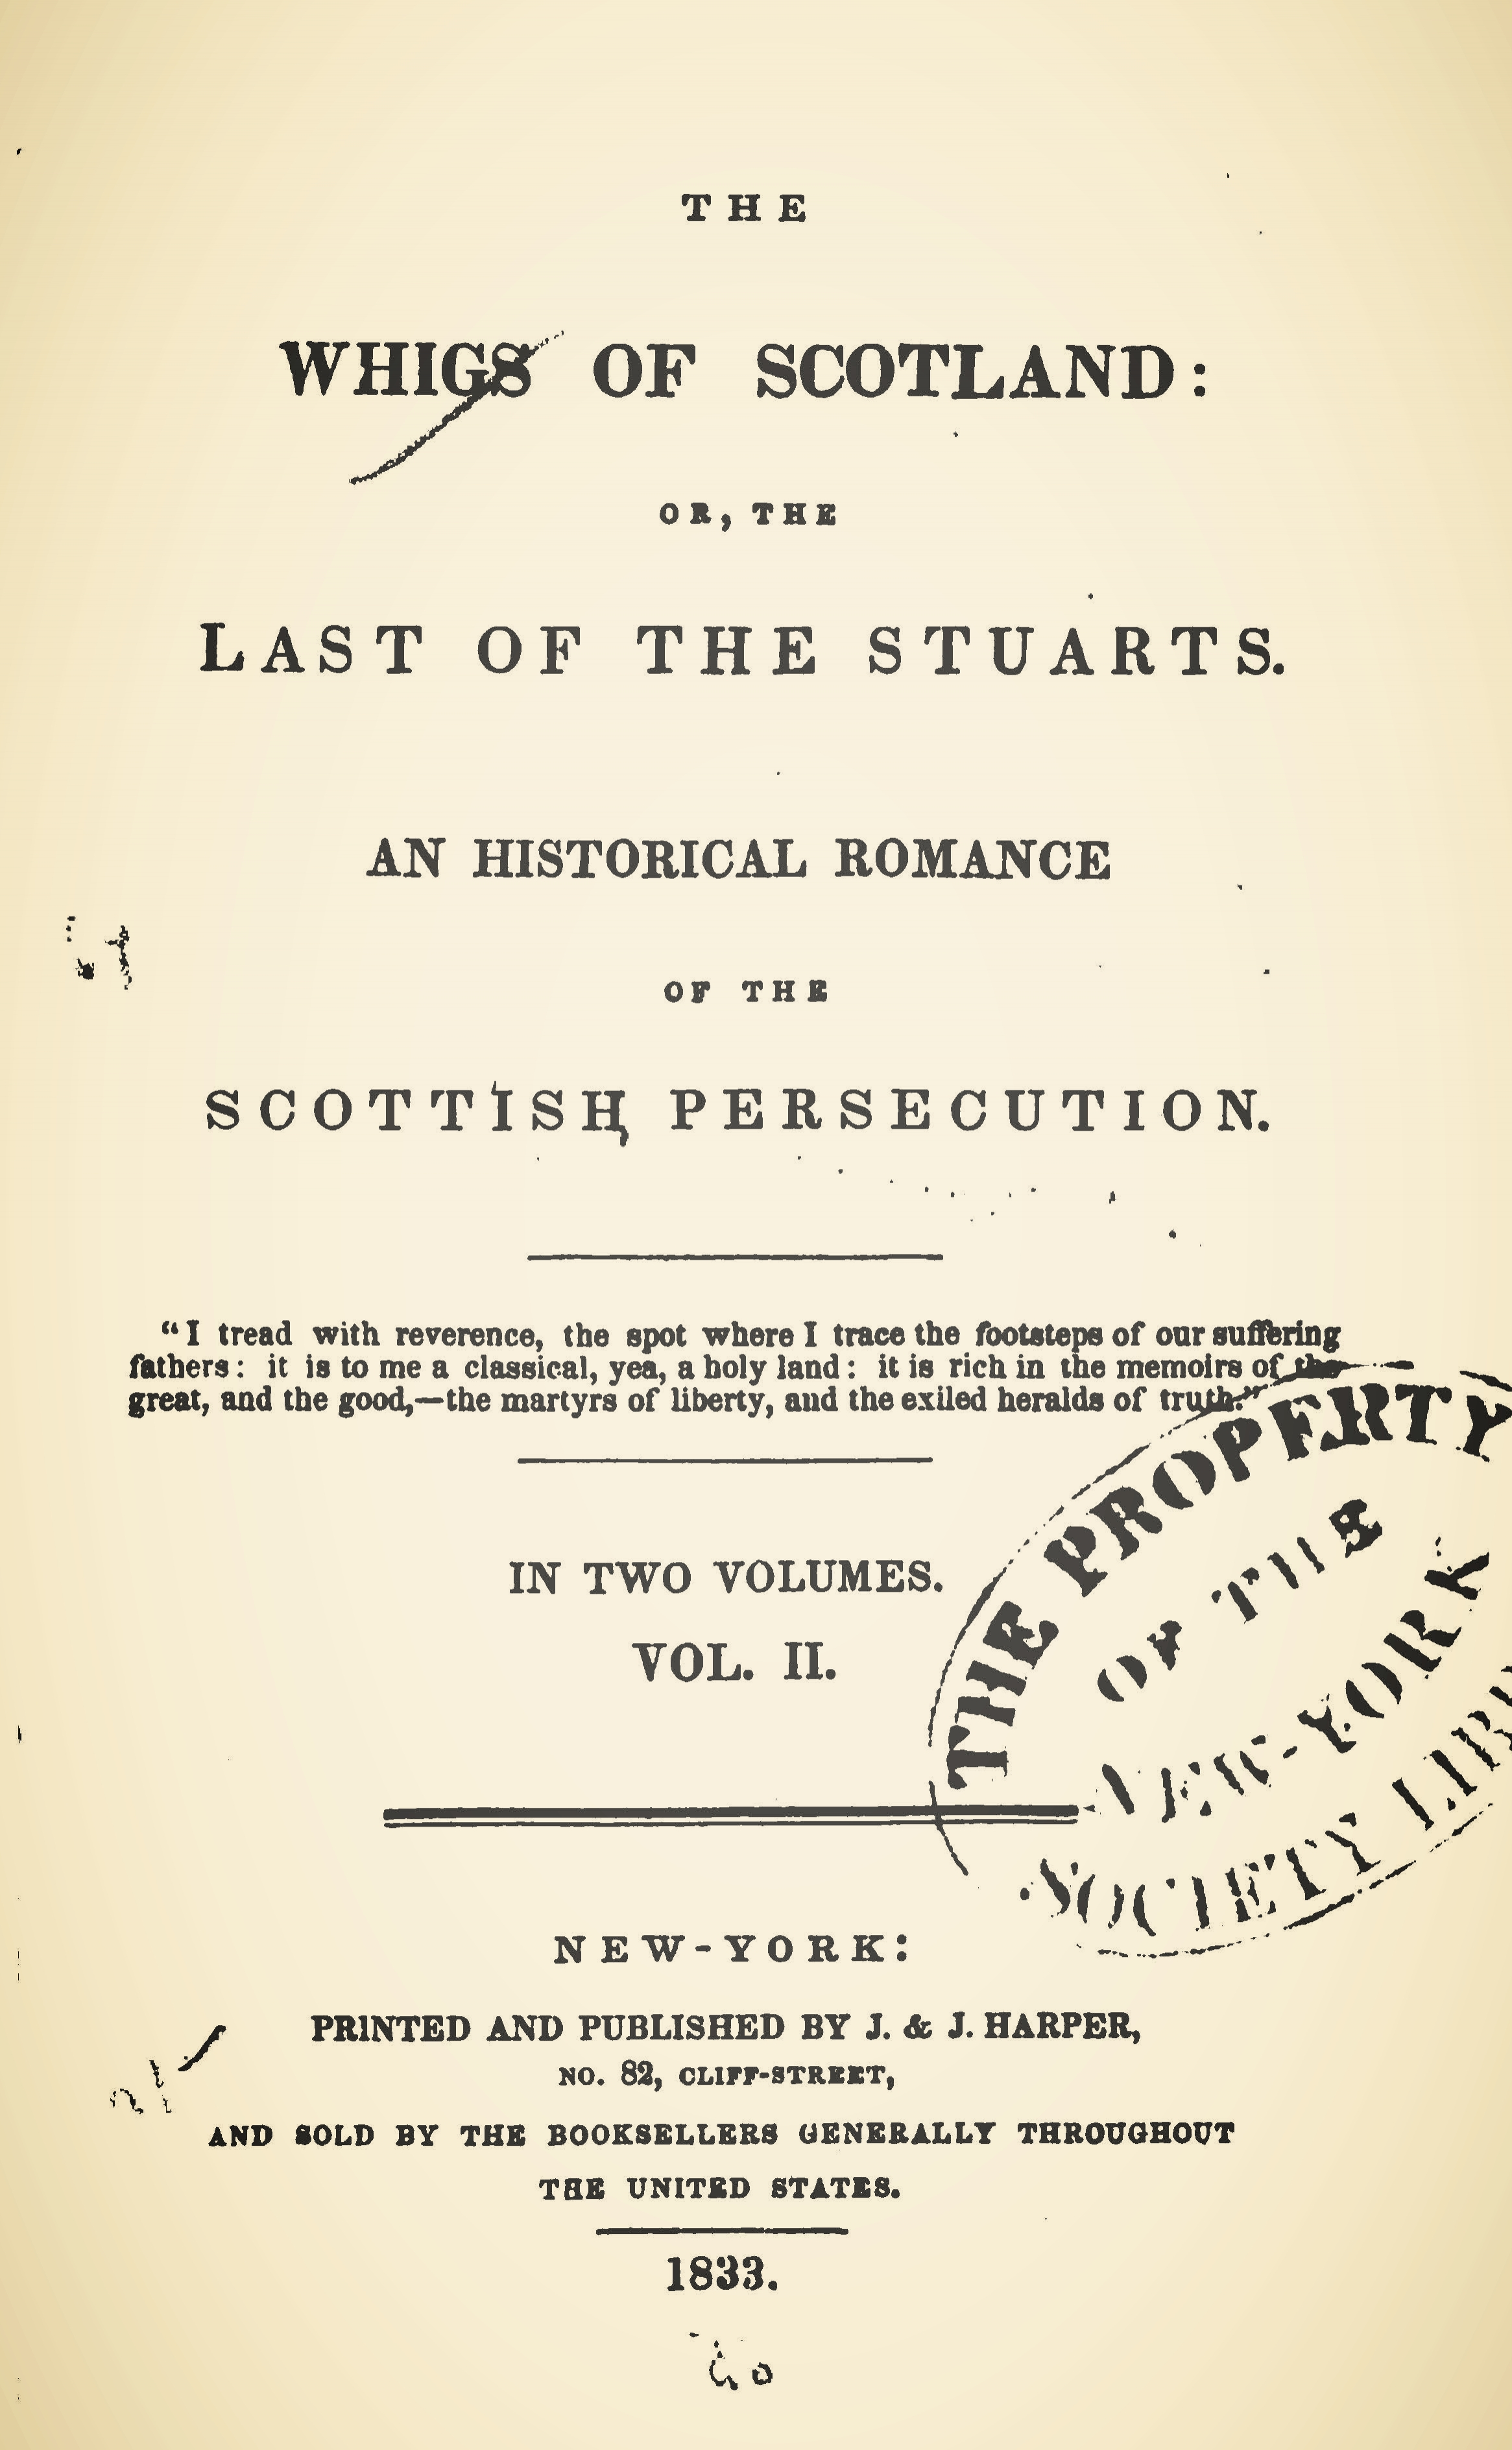 Brownlee, William Craig, The Whigs of Scotland or, The Last of the Stuarts An Historical Romance of the Scottish Persecution Vol. 2 Title Page.jpg